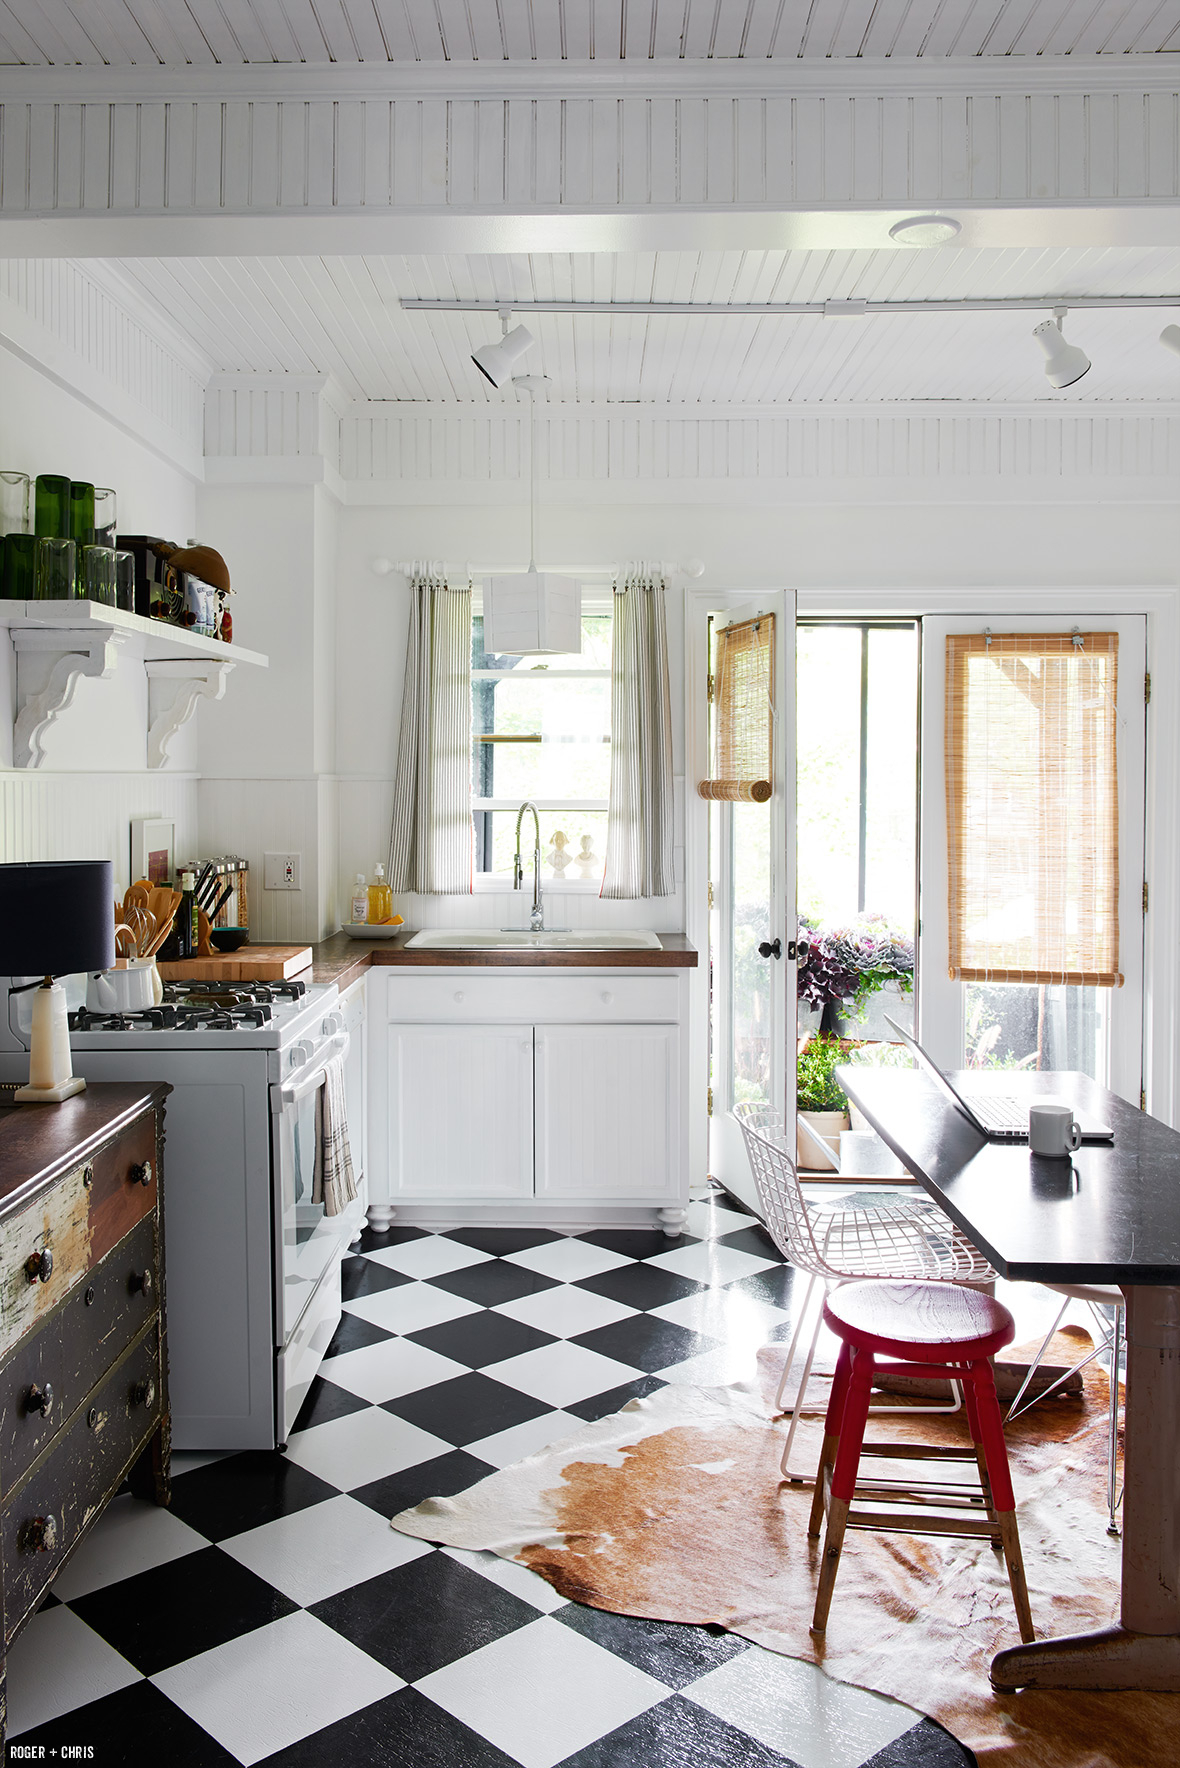 The finished kitchen. Photo by Alec Hemer.